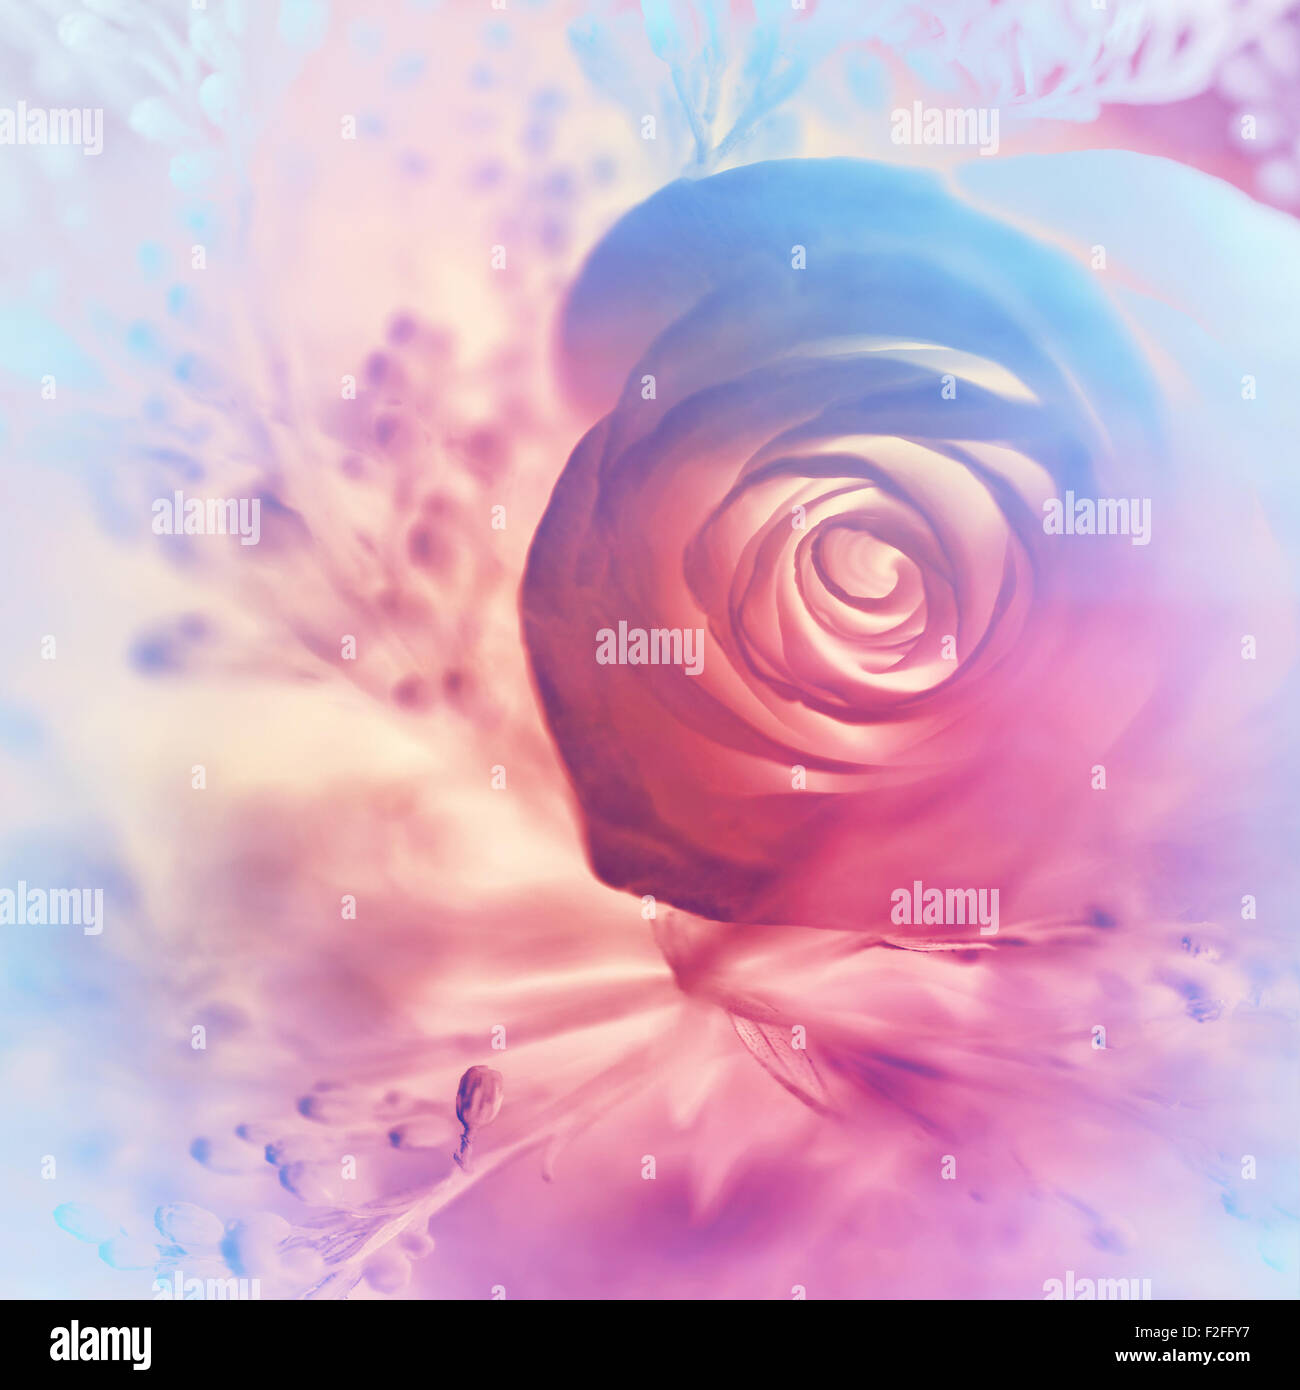 dreamy rose background abstract pink and purple floral